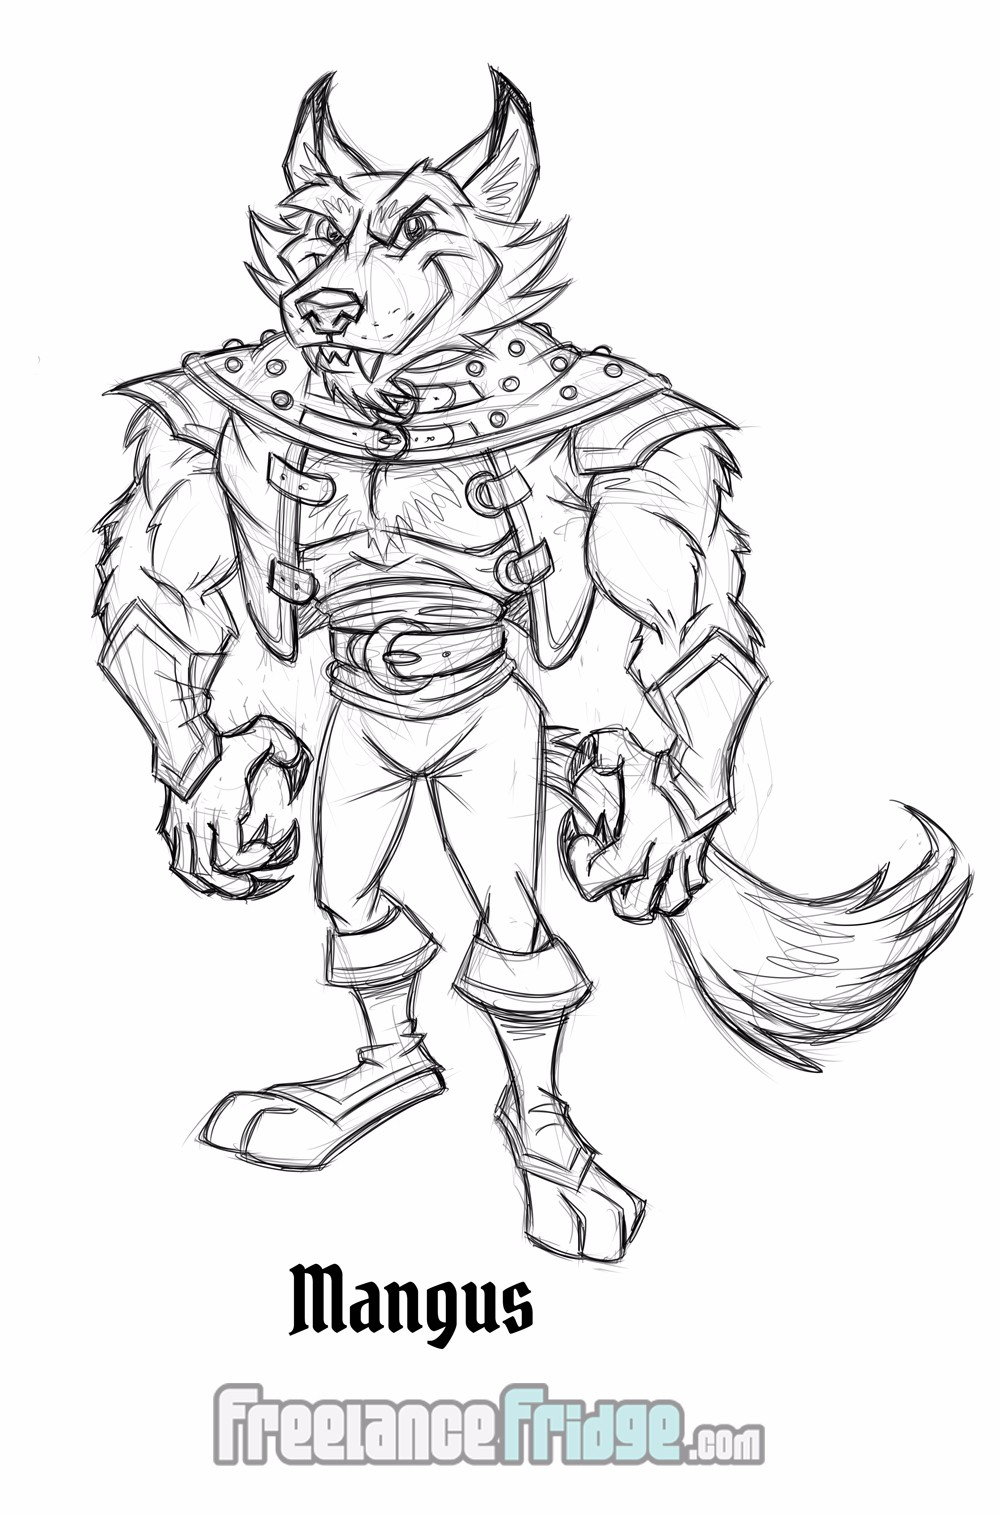 Fairy Tale Fantasy Character Sketch Concept Big Bad Wolf Mangus for Comic Book